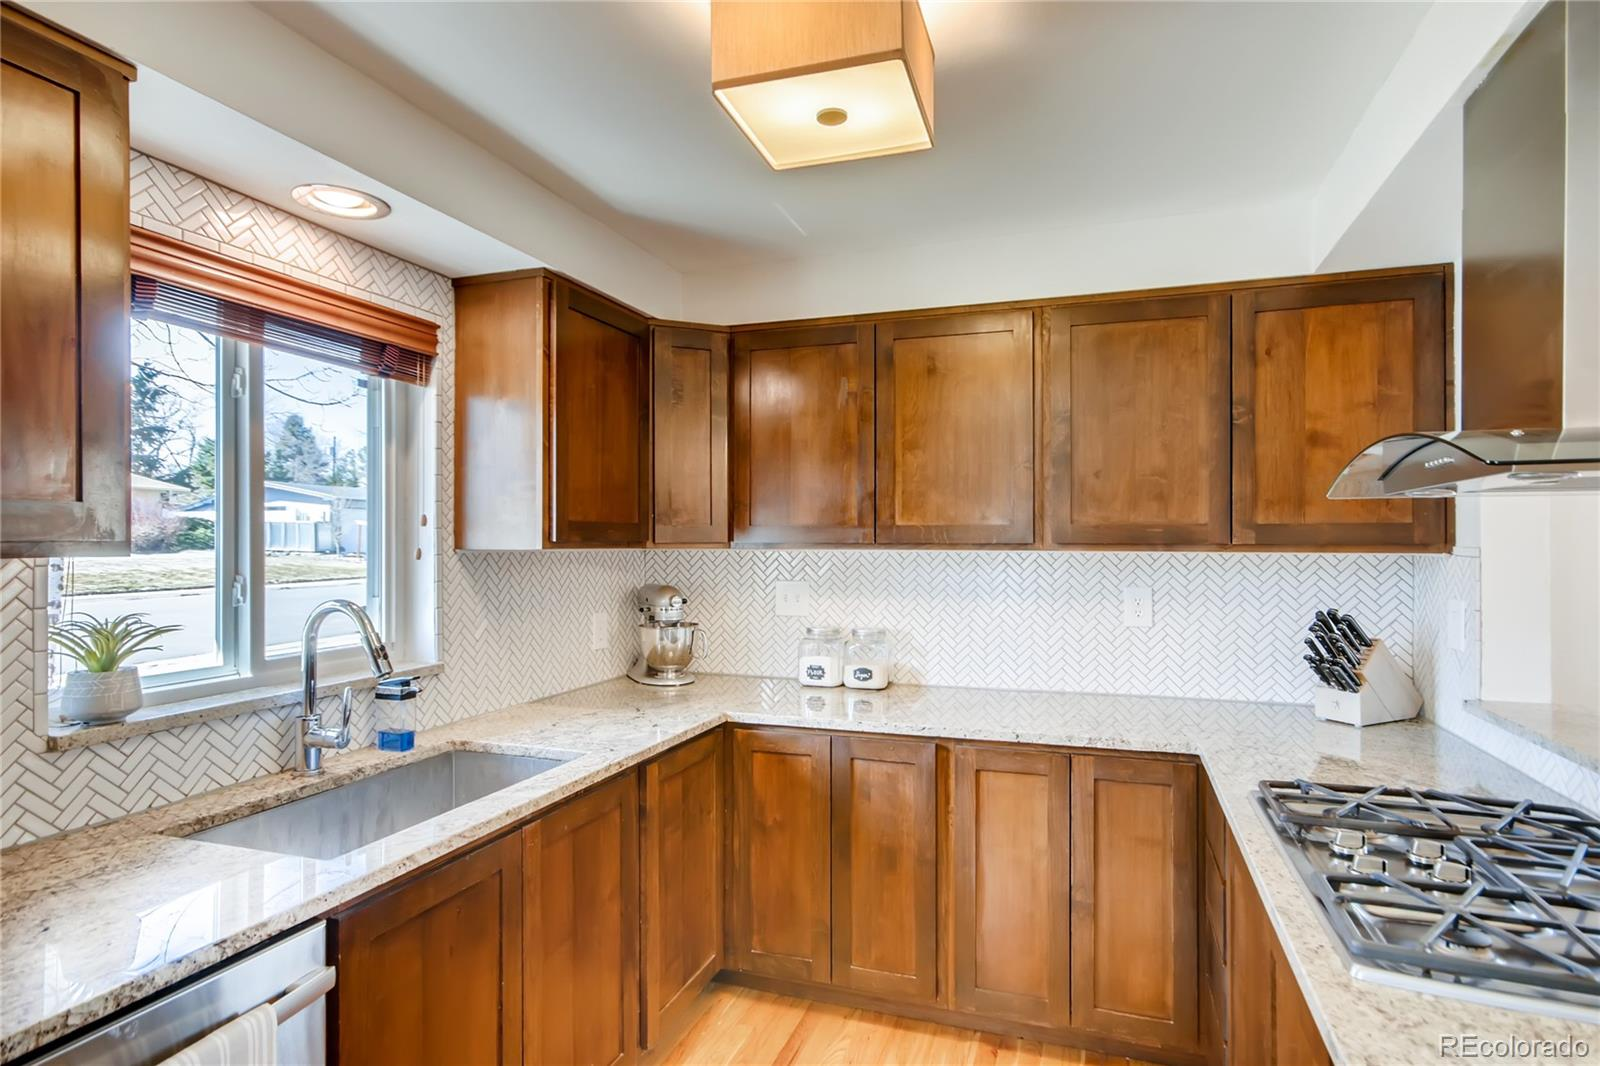 MLS# 9197299 - 13 - 10511 W 22nd Place, Lakewood, CO 80215